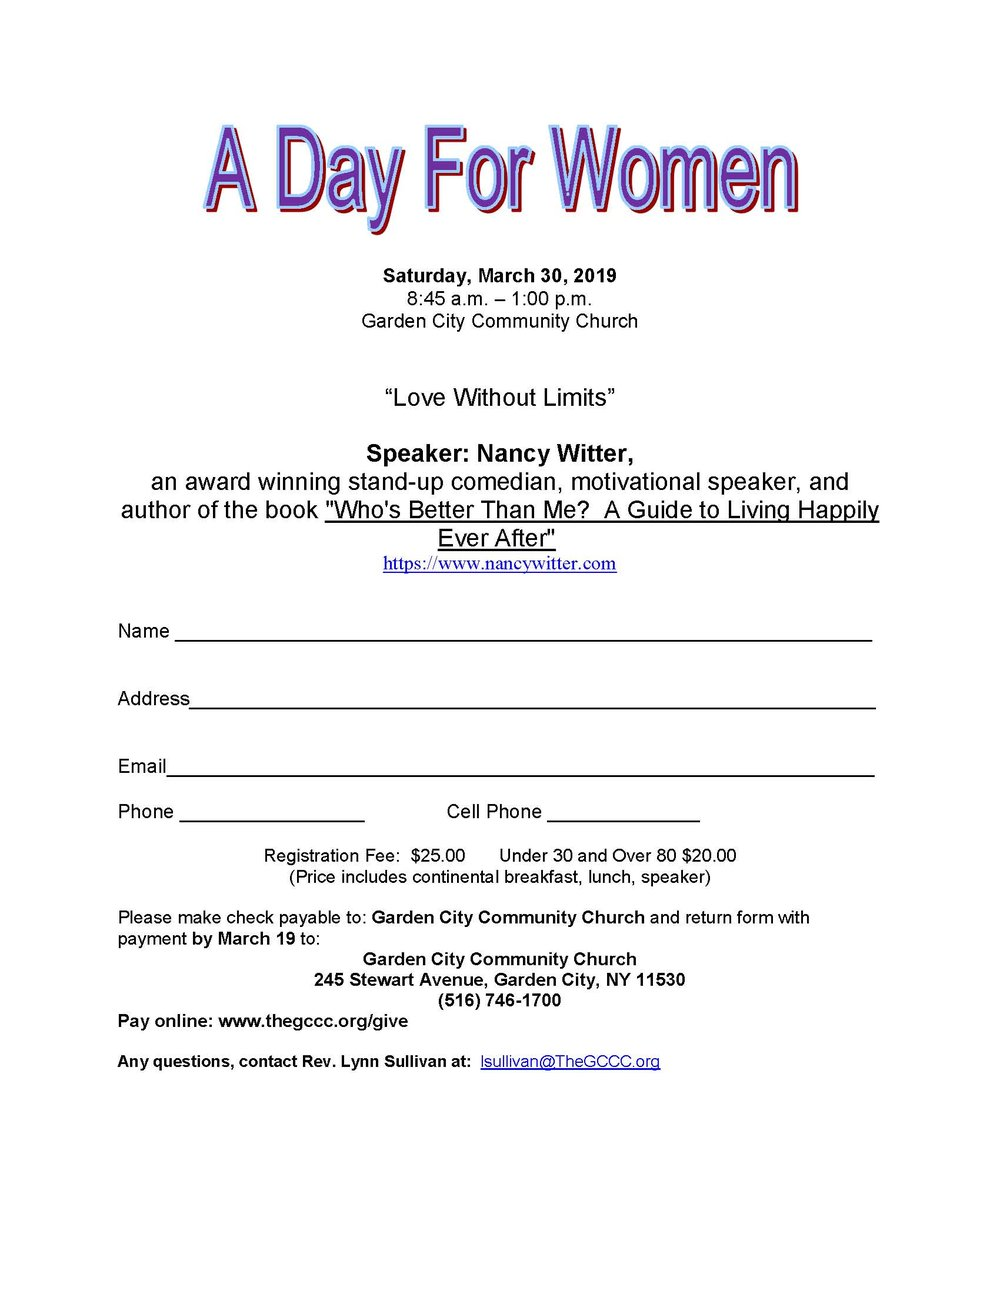 women's day retreat registration 2019.jpg